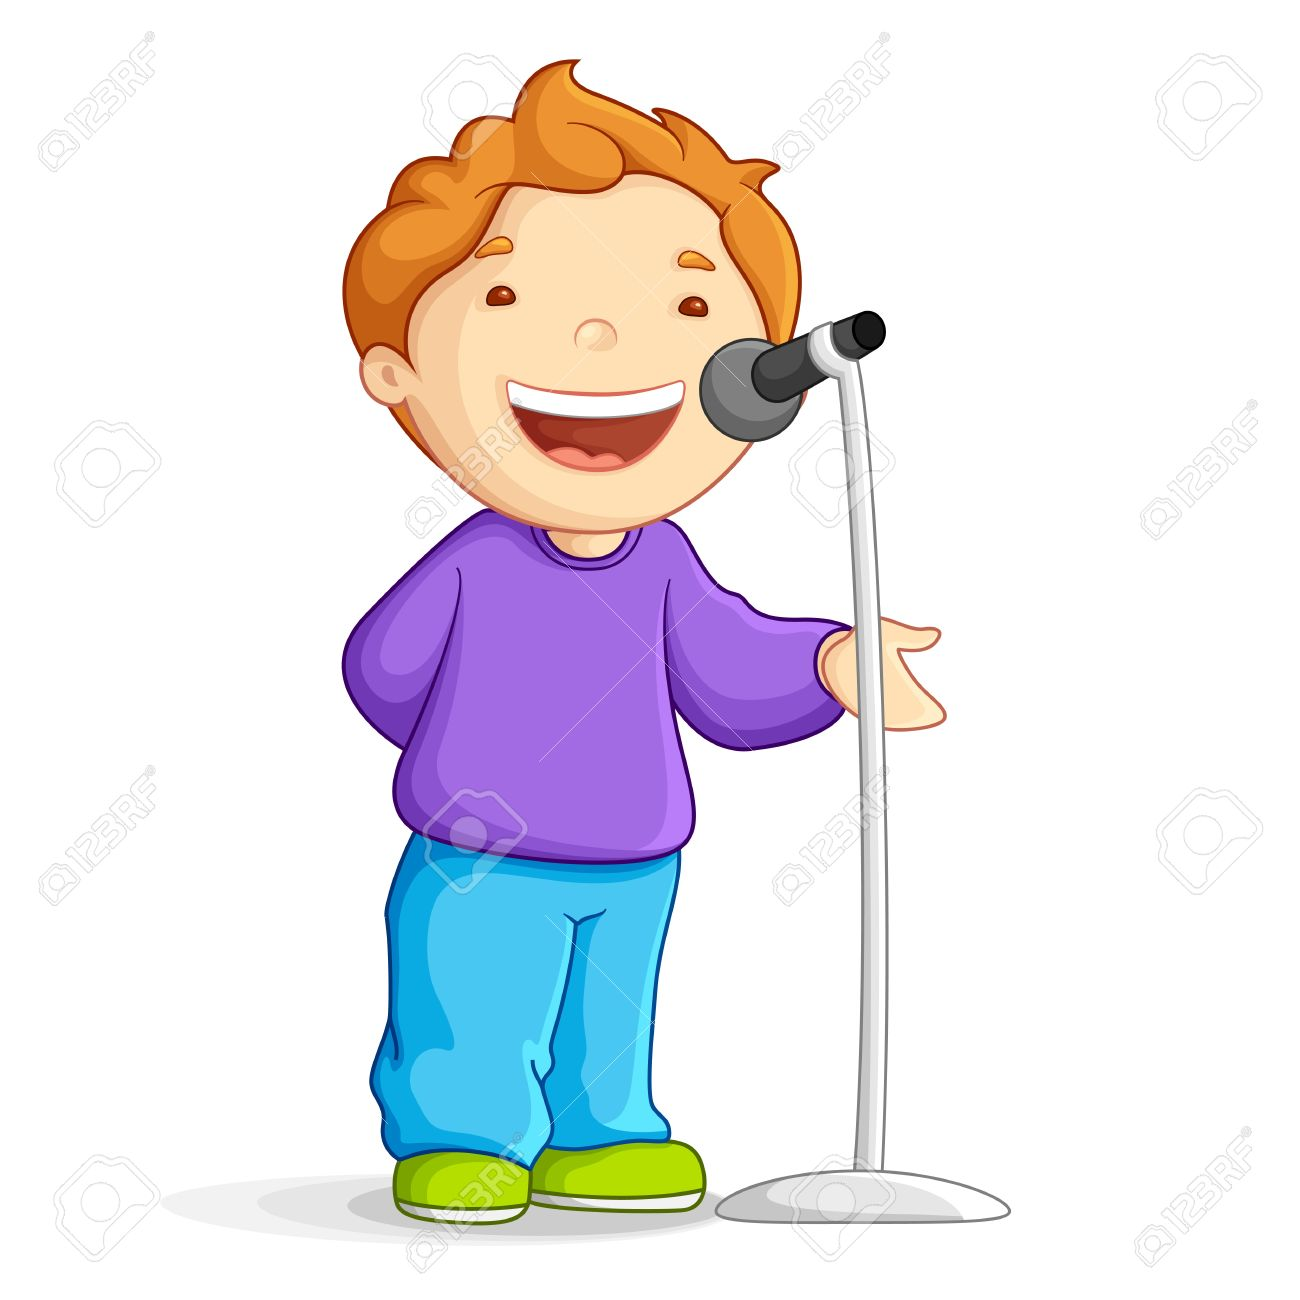 Clipart chanter png Chanter clipart 2 » Clipart Station png